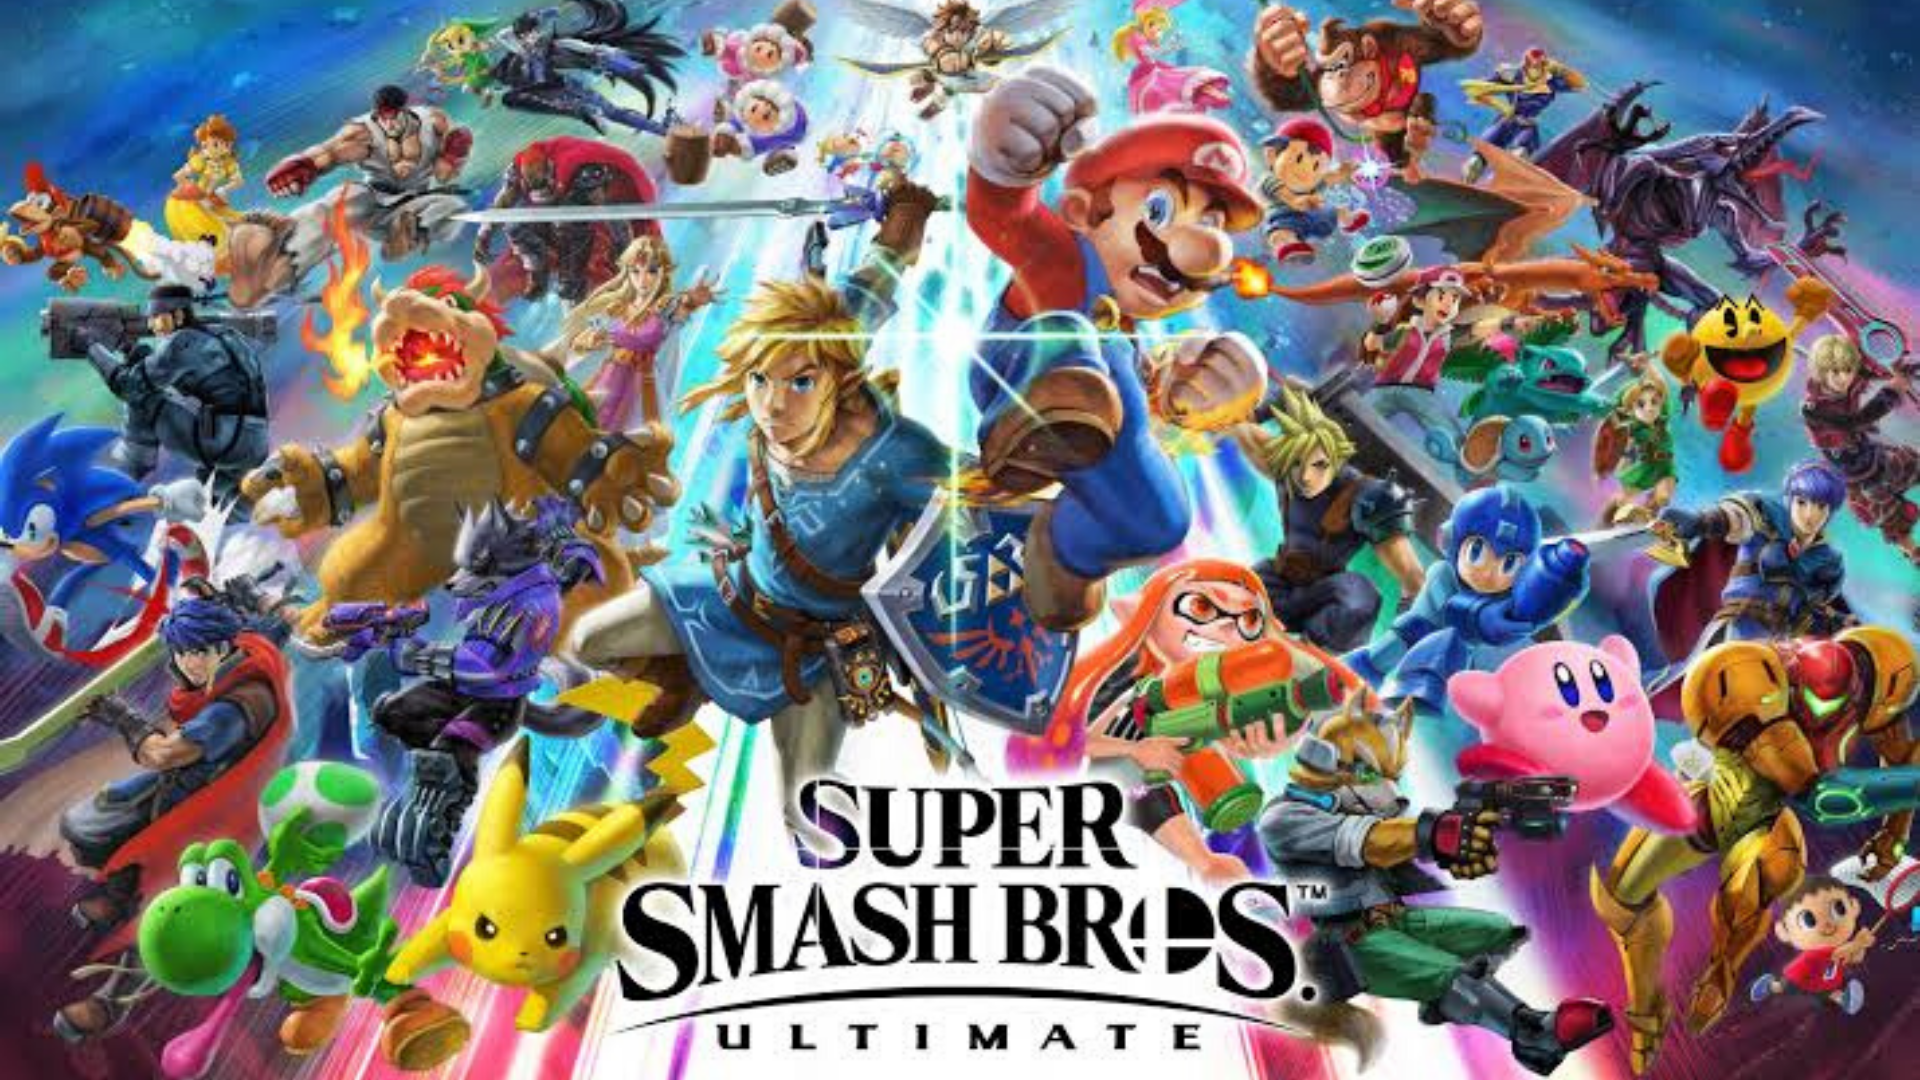 Super Smash Bros. Ultimate has won the Nintendo Game of The Year